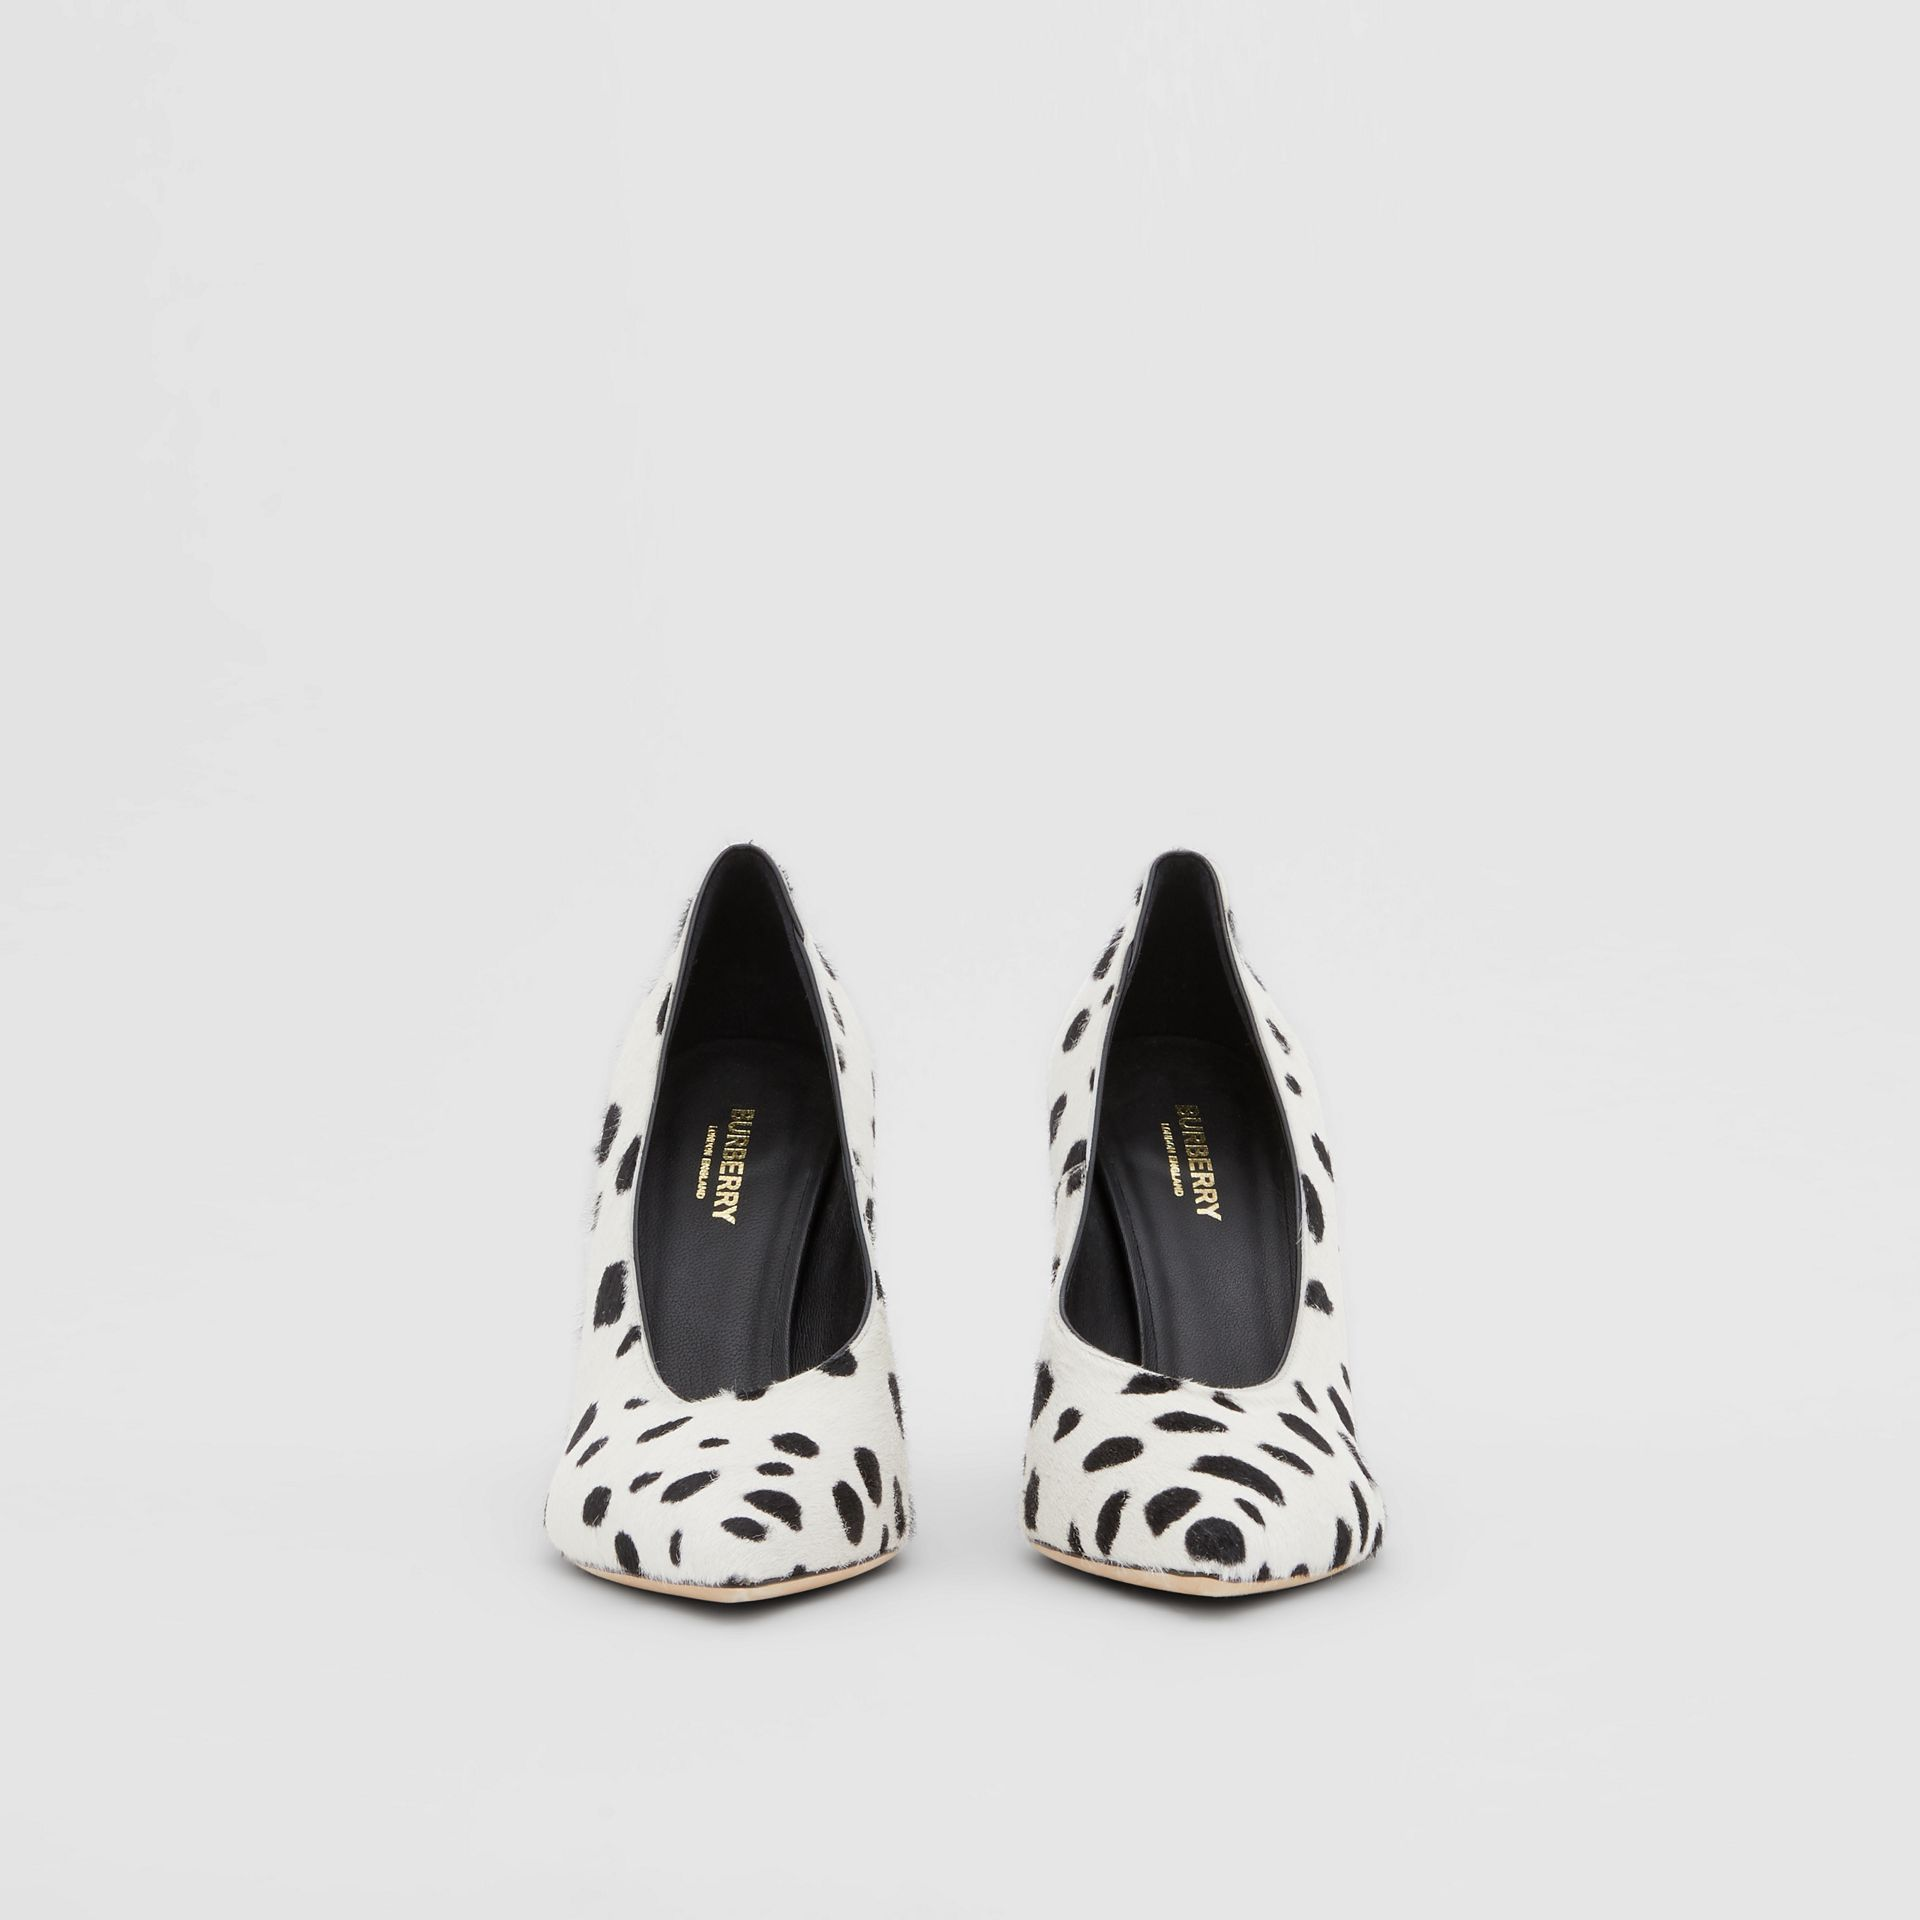 Dalmatian Print Calf Hair Pumps in Optic White/black - Women | Burberry United Kingdom - gallery image 3